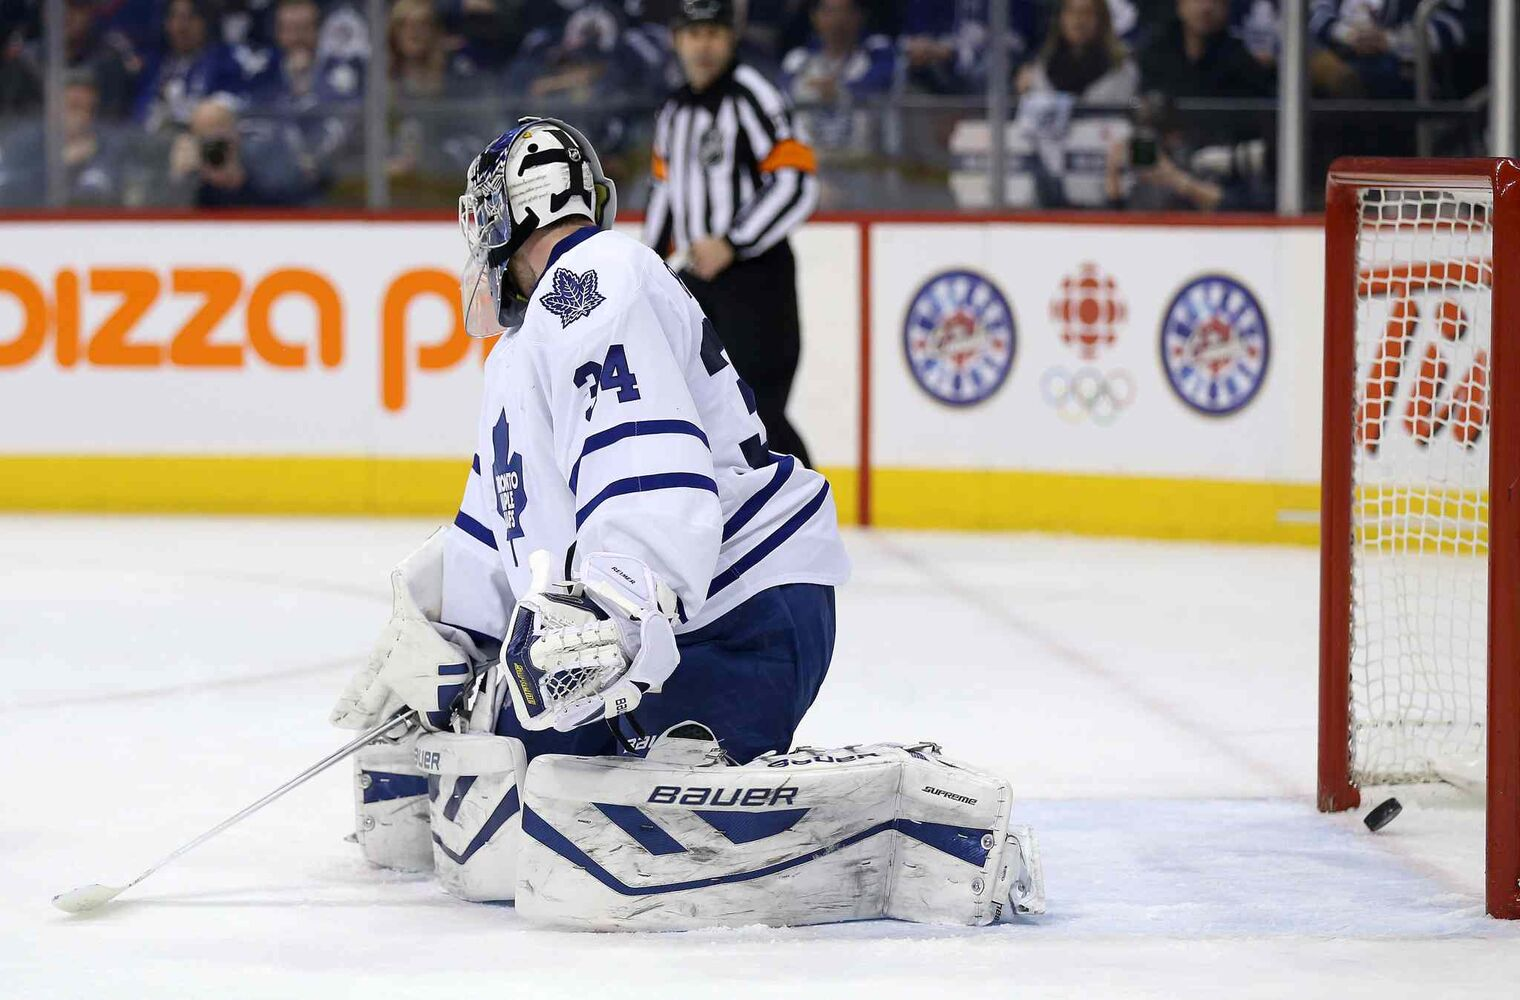 A shot by Winnipeg Jets' Zach Bogosian (44) gets past Toronto Maple Leafs' goaltender James Reimer (34) during  the second period of Saturday's game. (Trevor Hagan / Winnipeg Free Press)